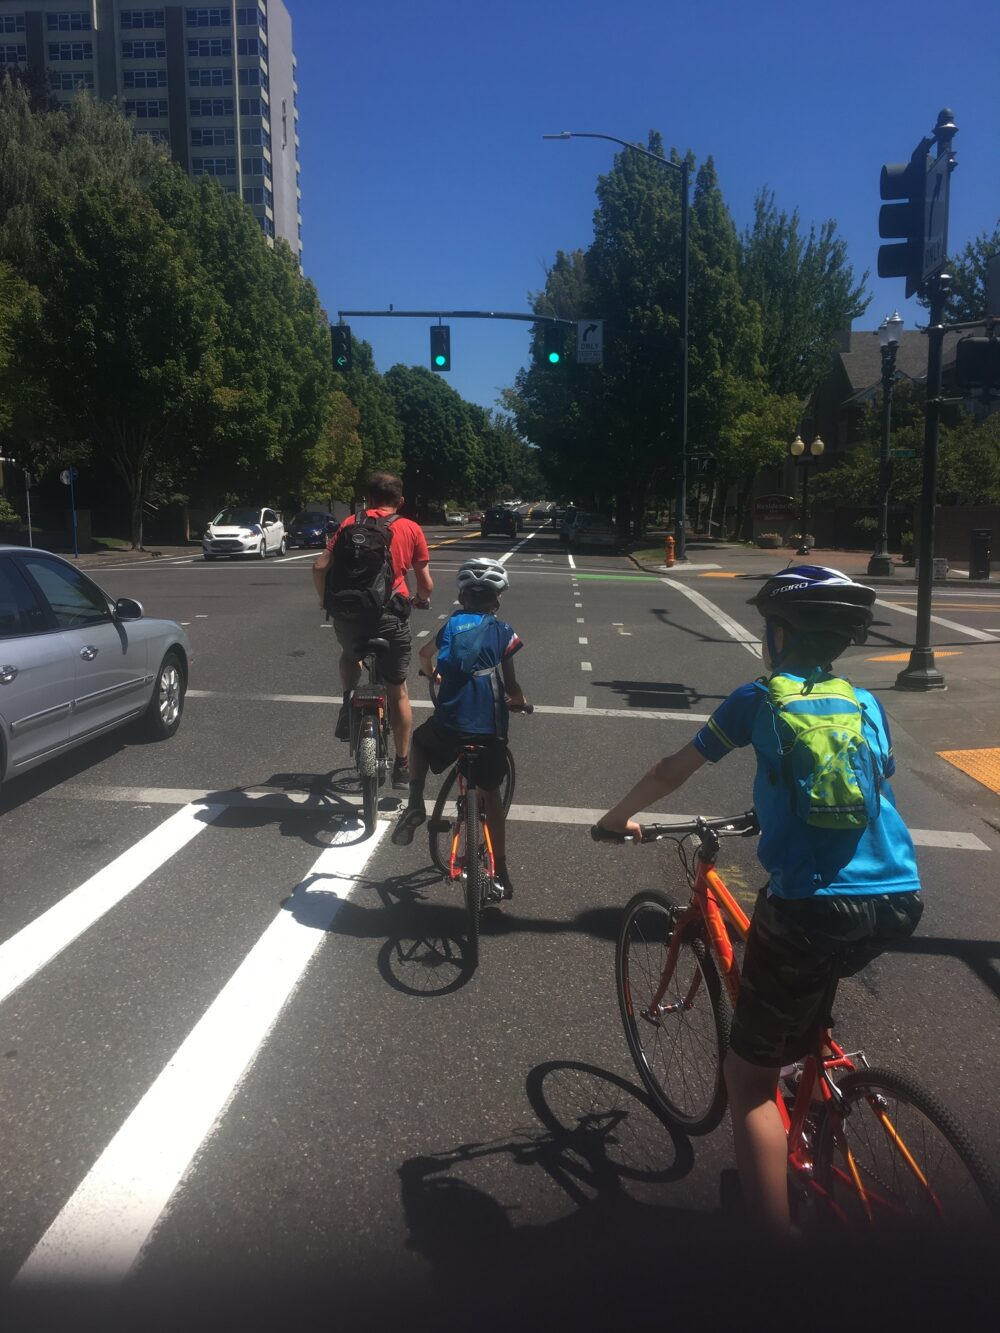 Cycling infrastructure in Portland, Oregon